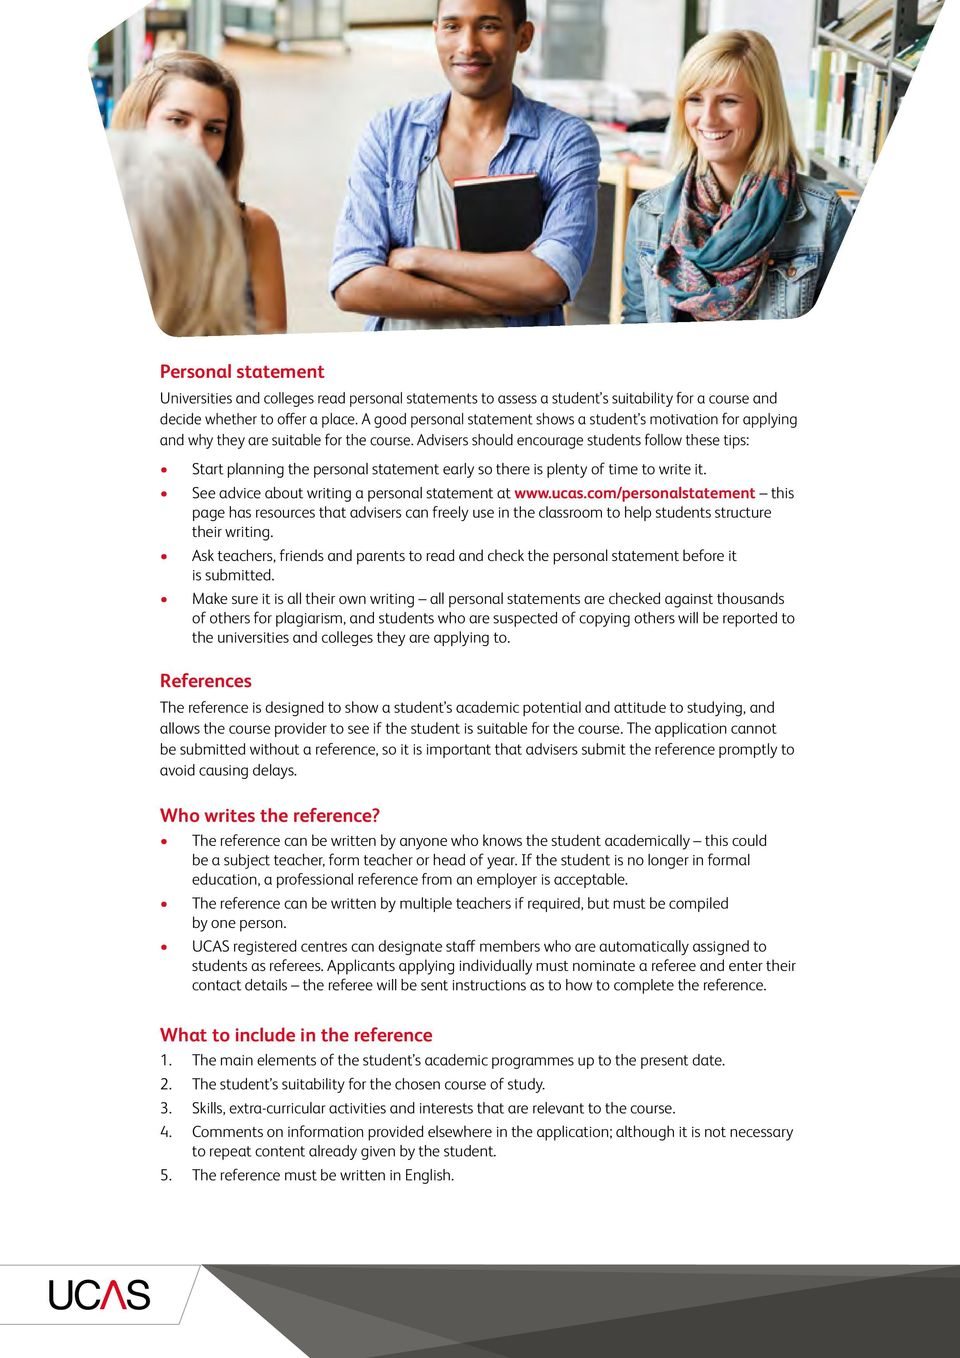 Advisers should encourage students follow these tips: Start planning the personal statement early so there is plenty of time to write it. See advice about writing a personal statement at www.ucas.